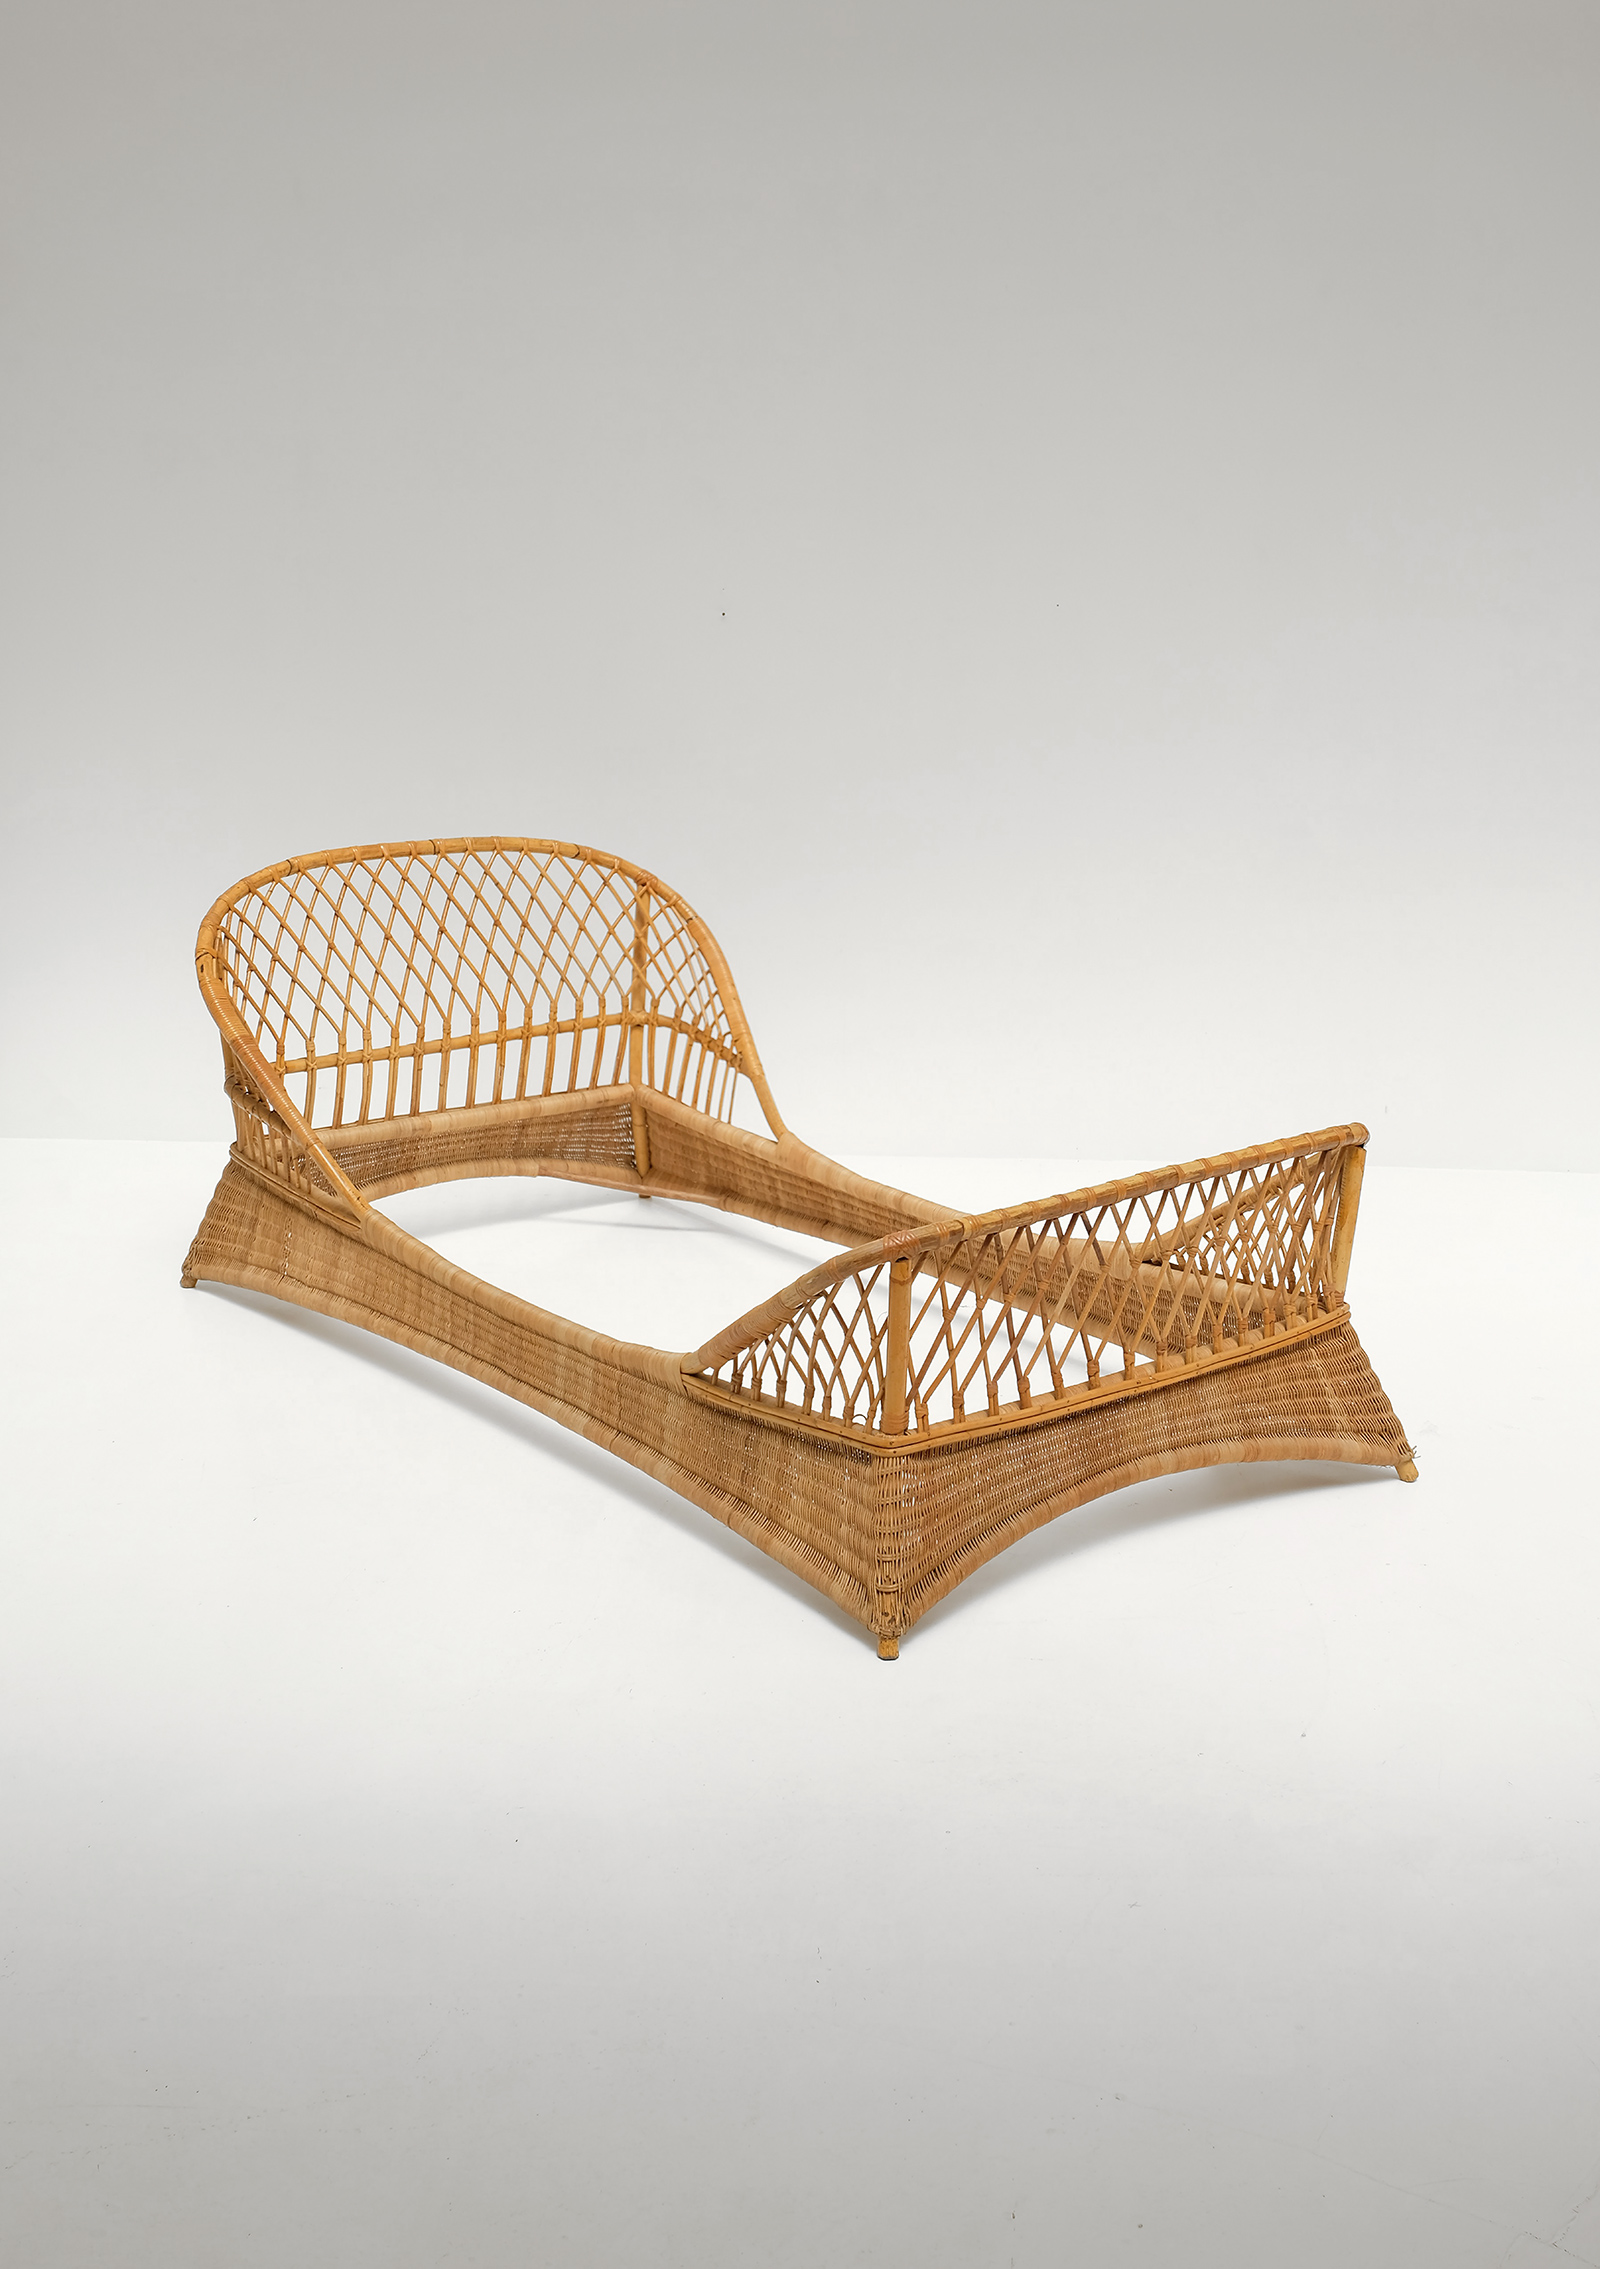 Two 1950s Rattan Daybedsimage 2